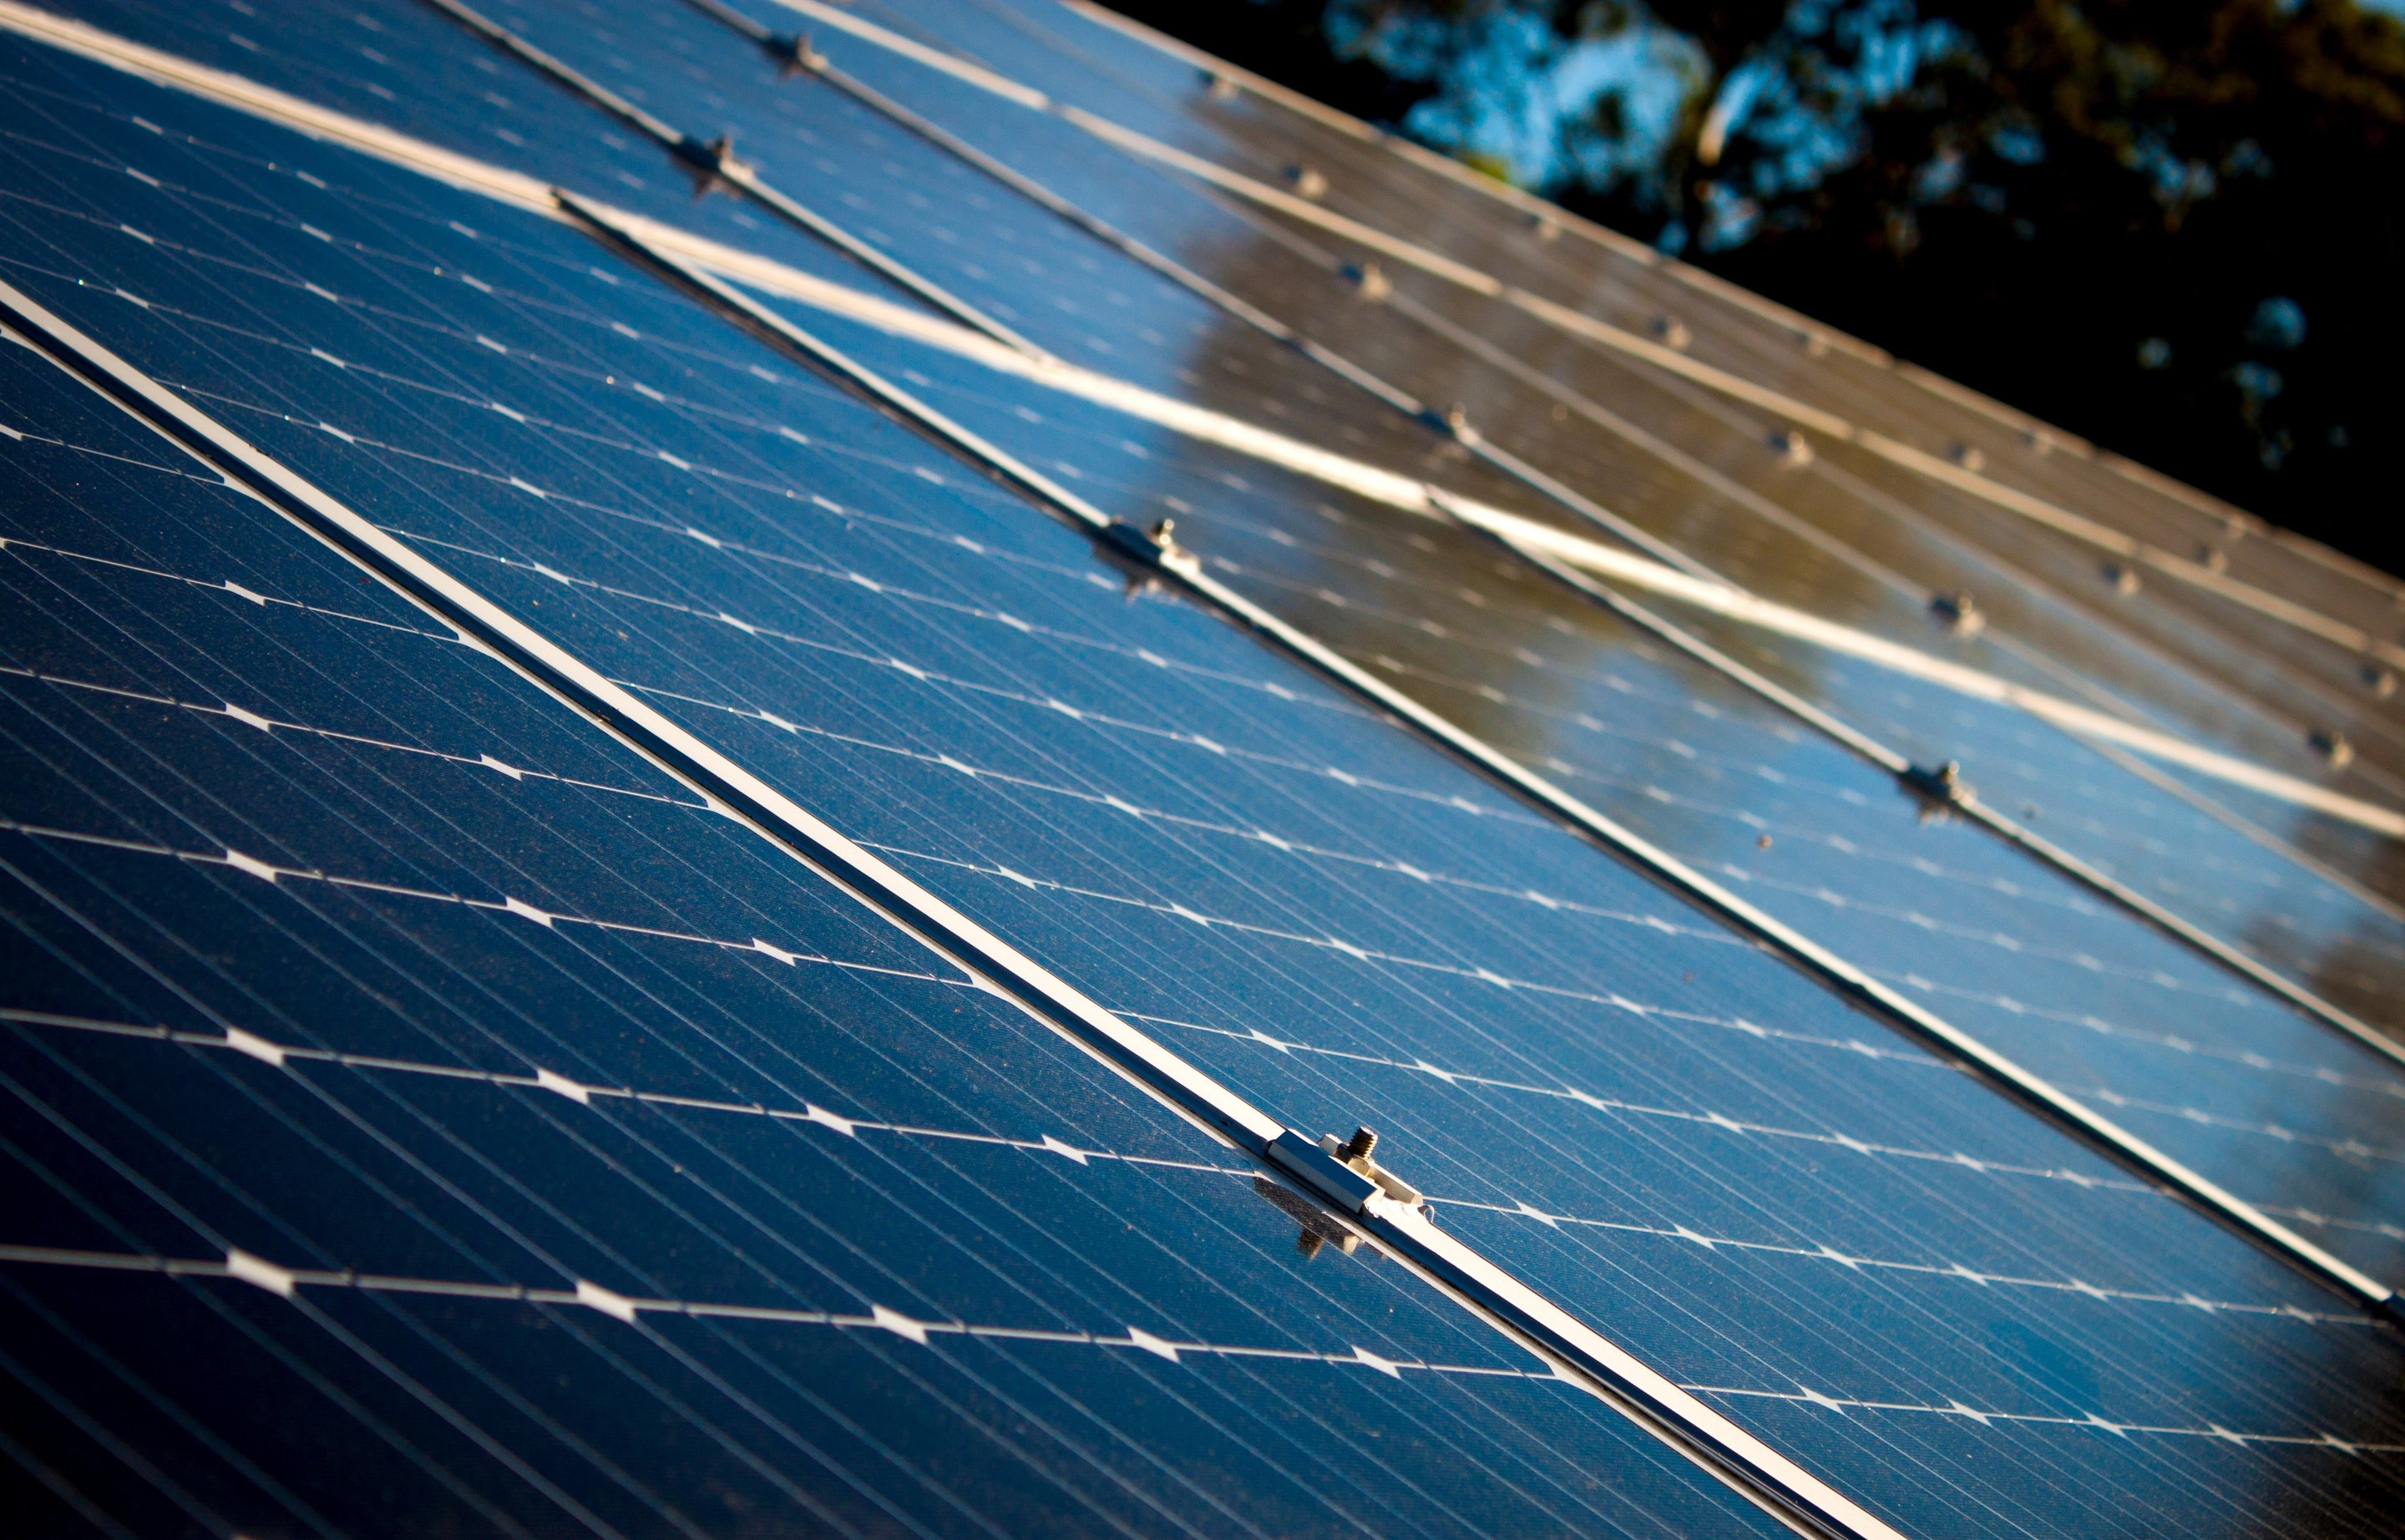 are solar panels a middle class purchase this survey says yes